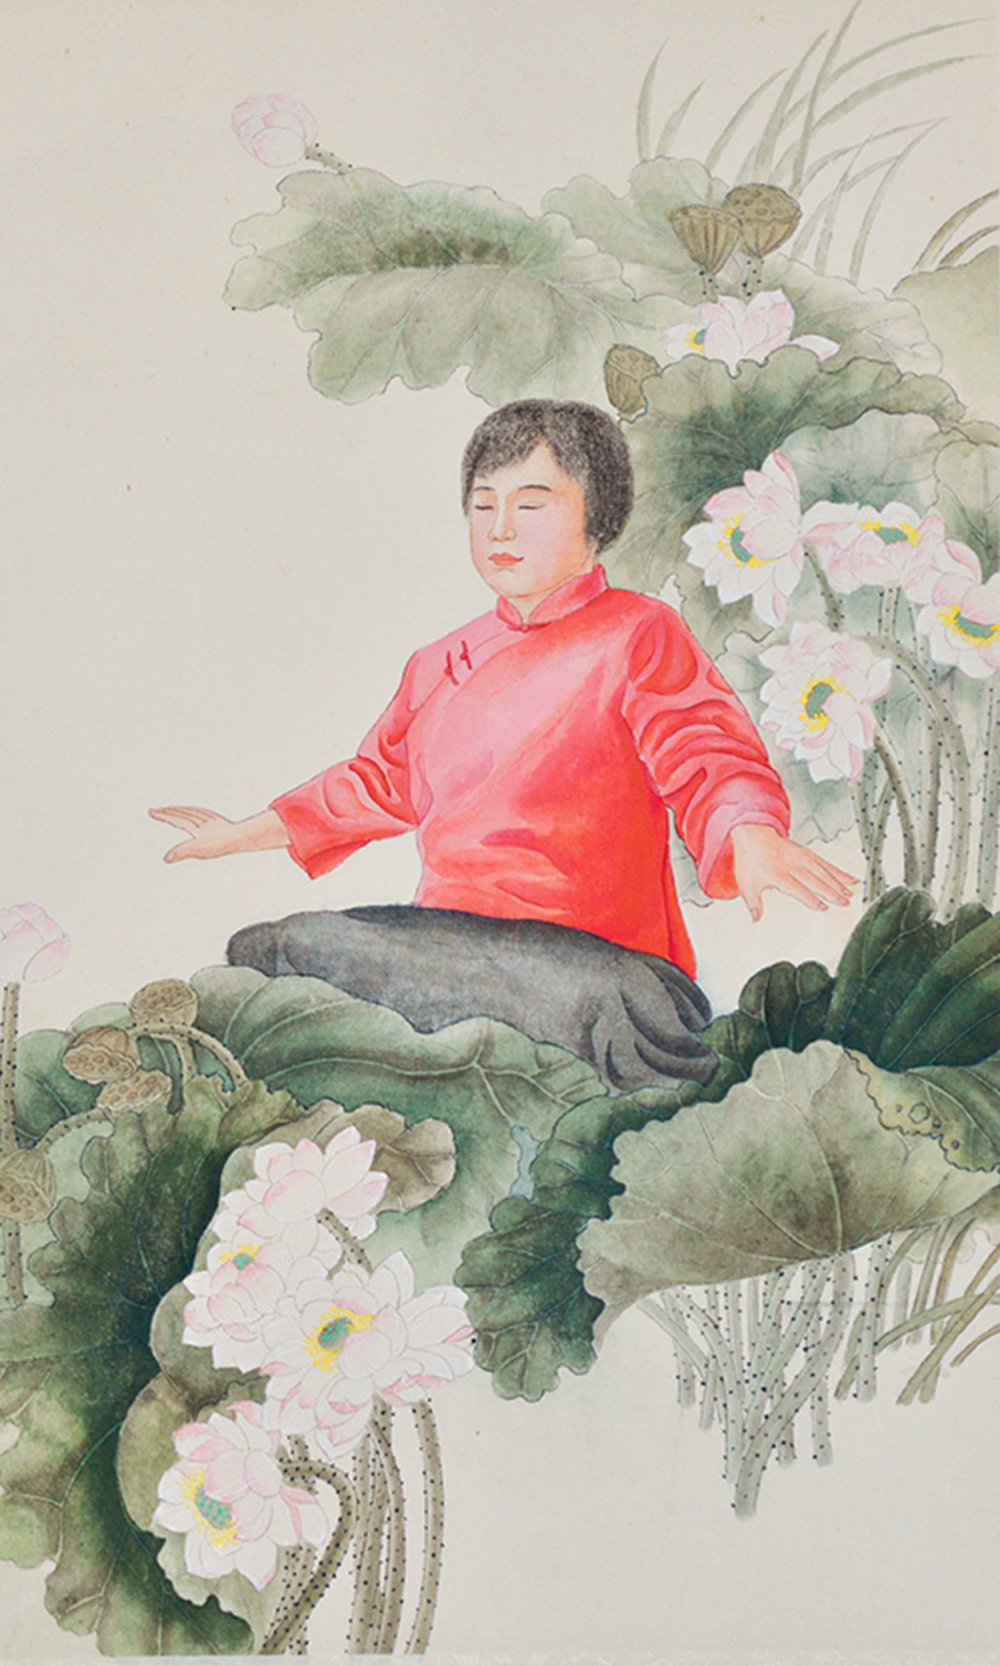 Pure Lotus is Zhang's self portrait while doing Falun Gong, the spiritual discipline that cured her painful ailment that prohibited her from painting.